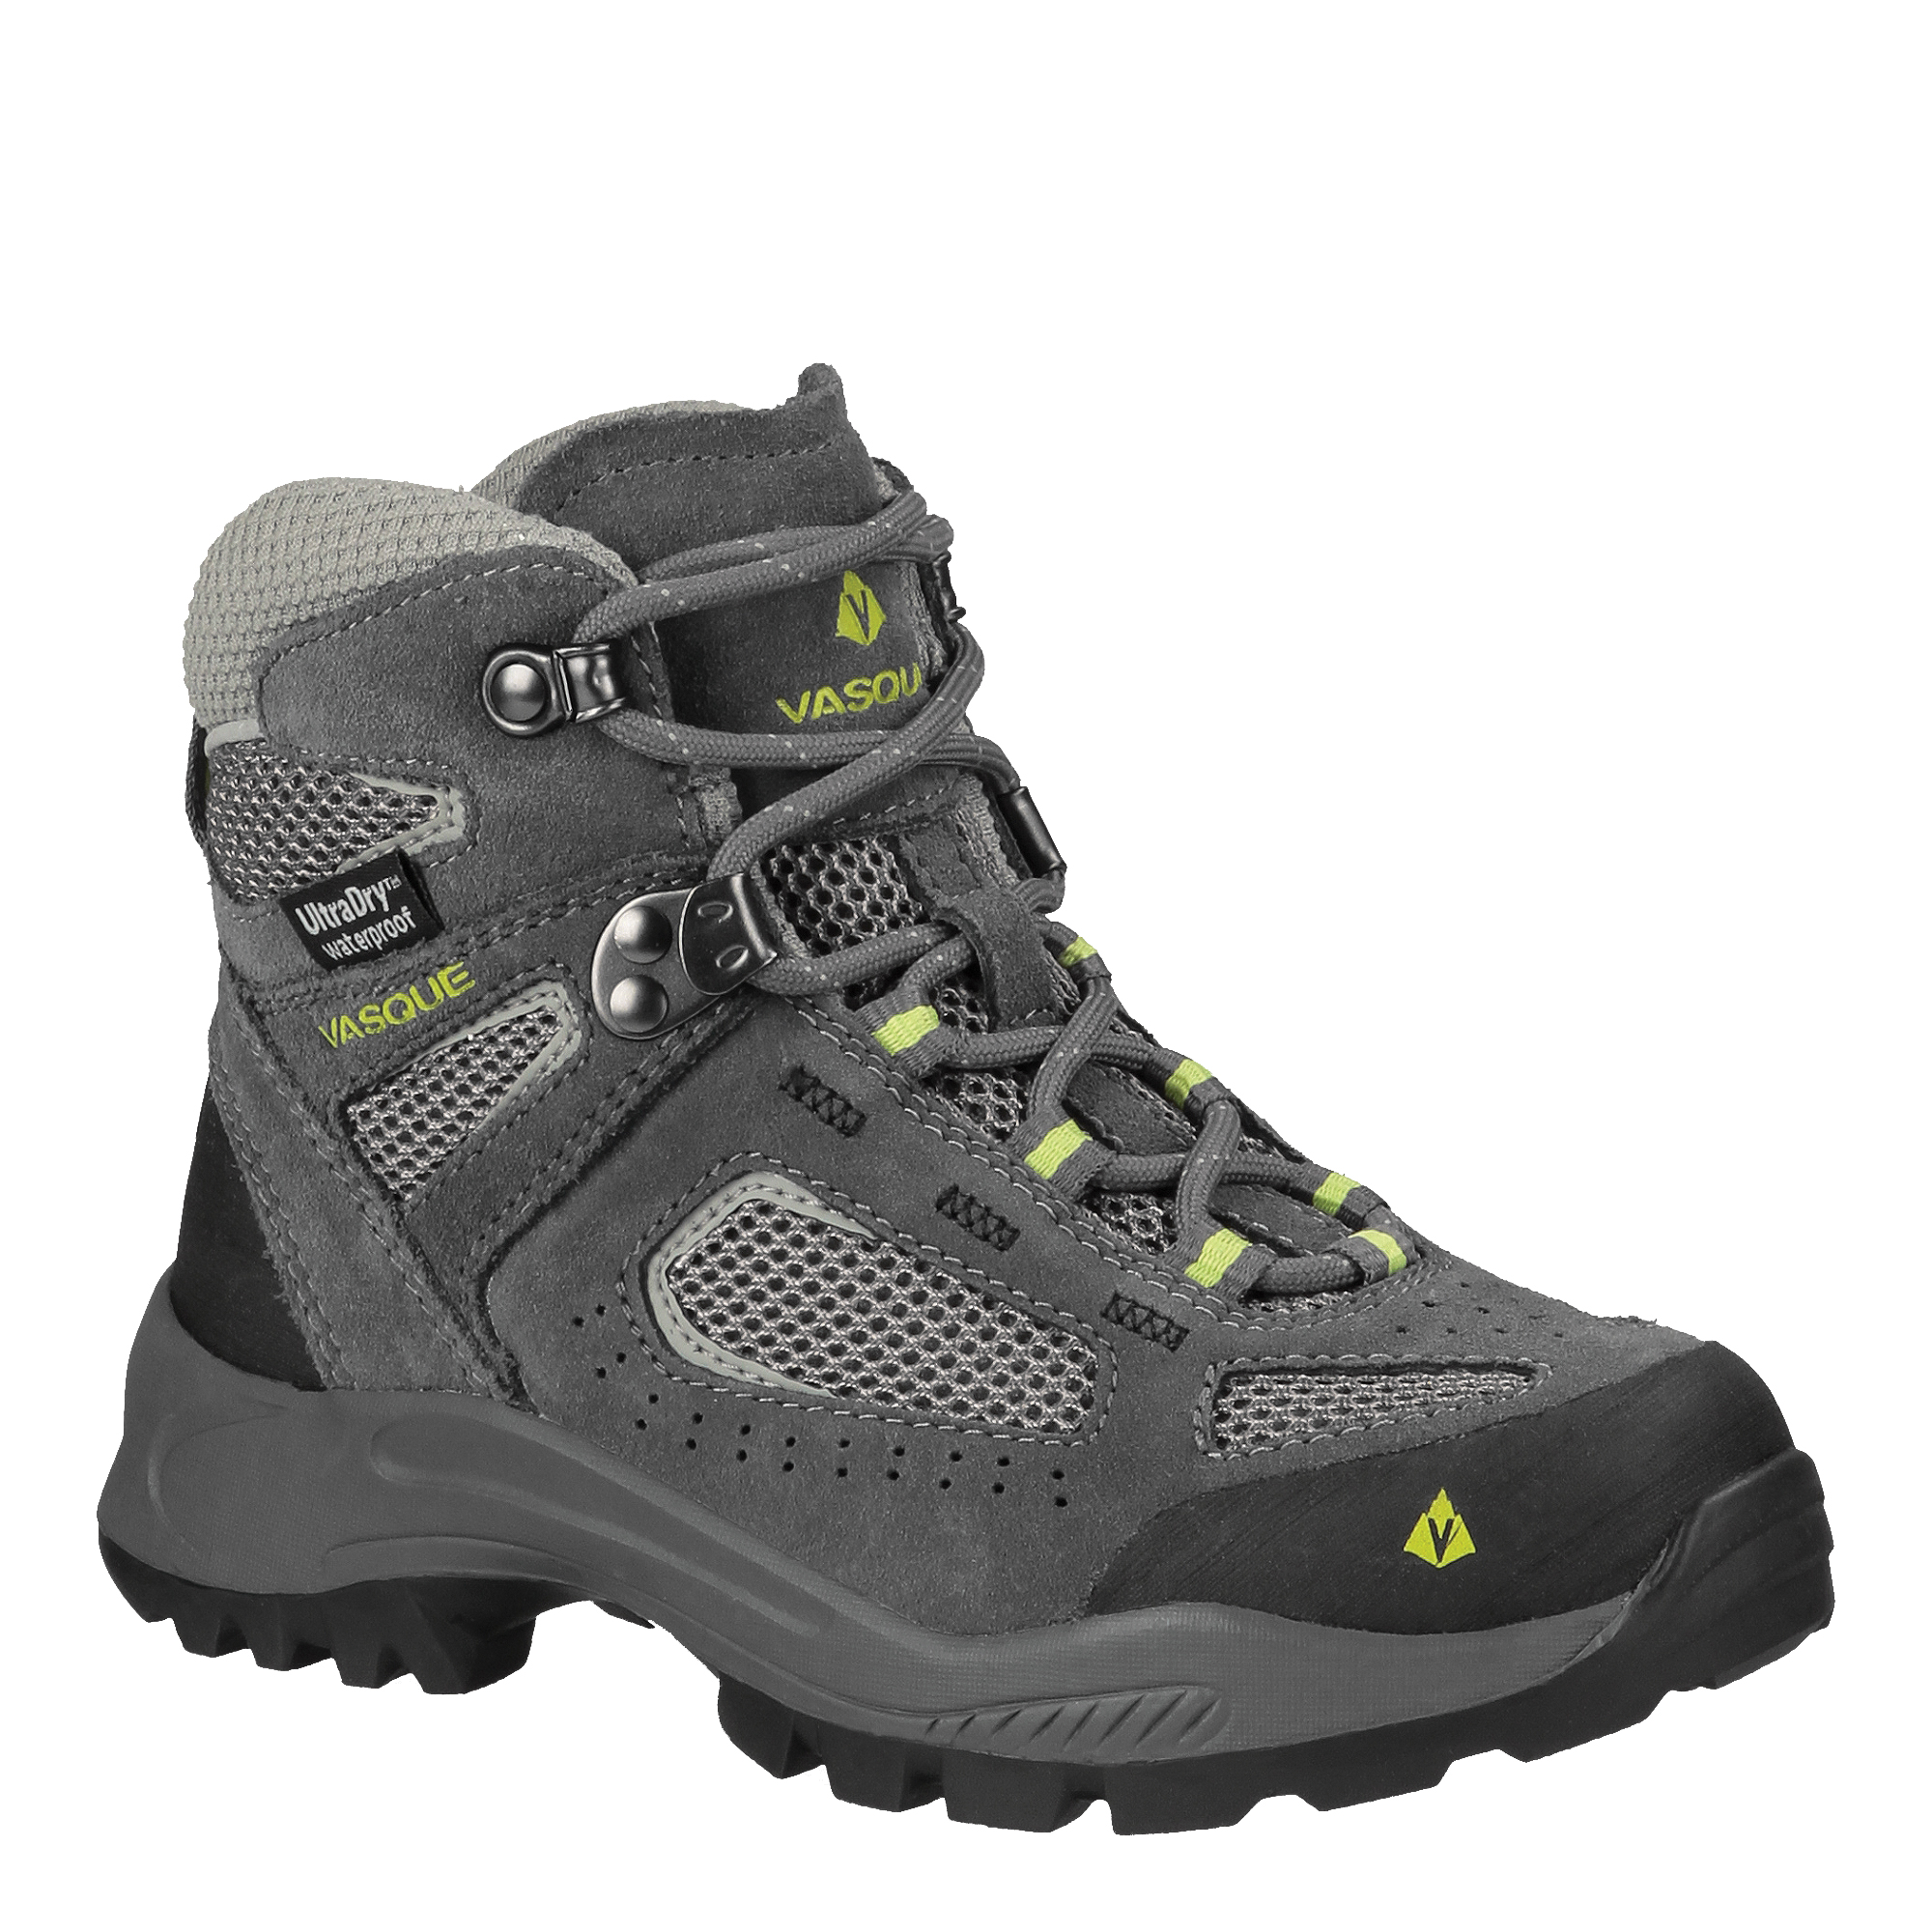 9c6b79fb314 Vasque Breeze 2.0 Ultradry Kids Hiking Boots - Children to Youths